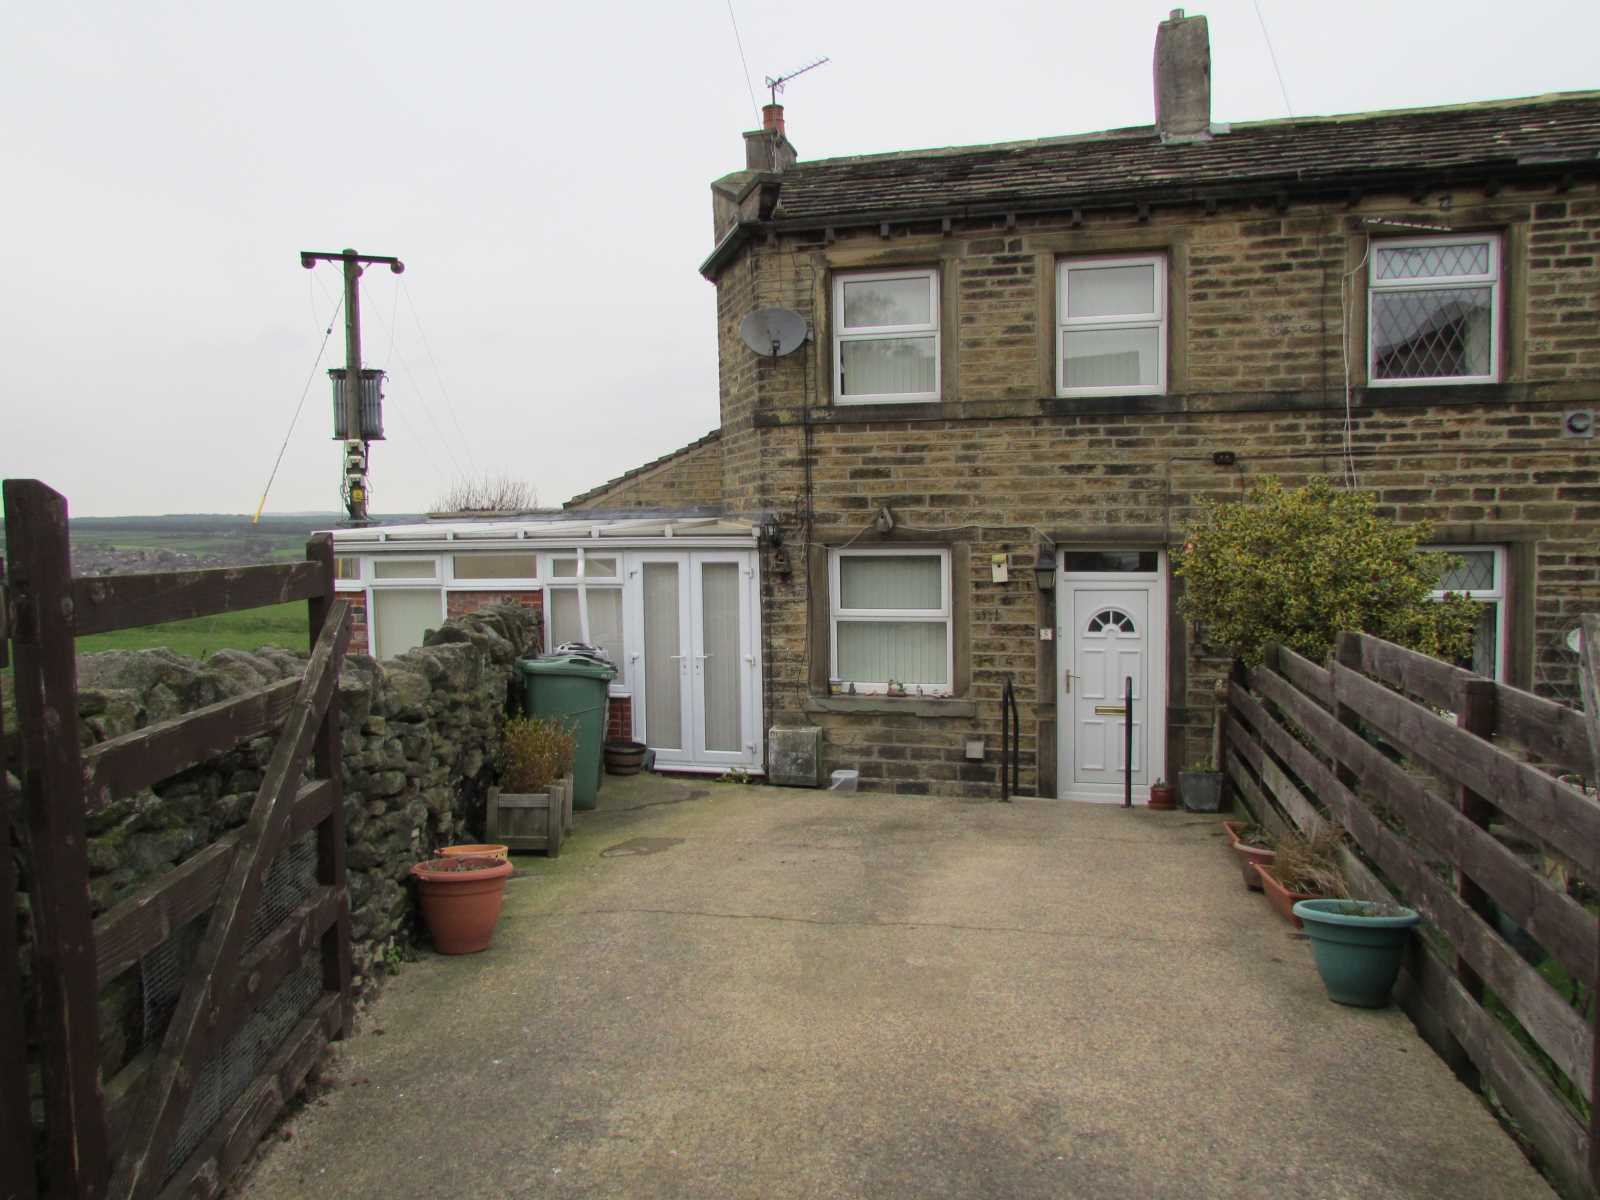 Gibb Cottage, 5 Oldfield Road, Honley, HD9 6NN